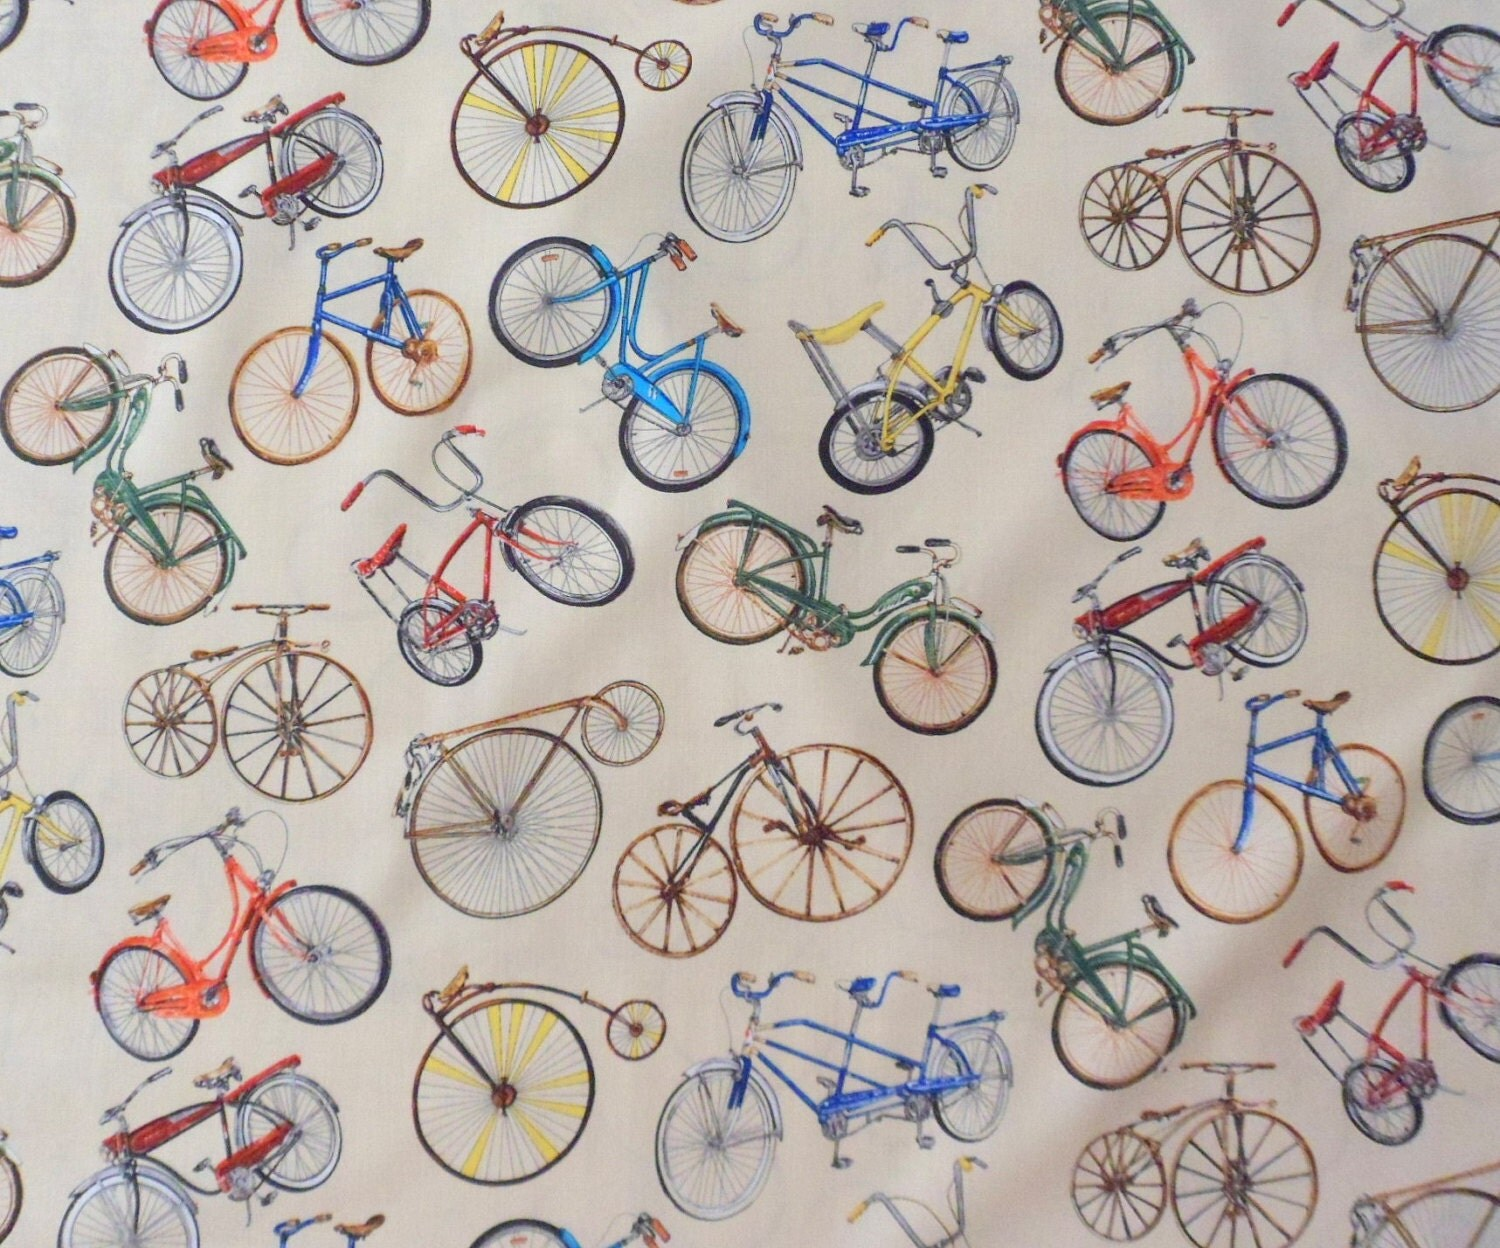 Vintage Bicycles Fabric Bicycle Built for Two Fabric Cotton